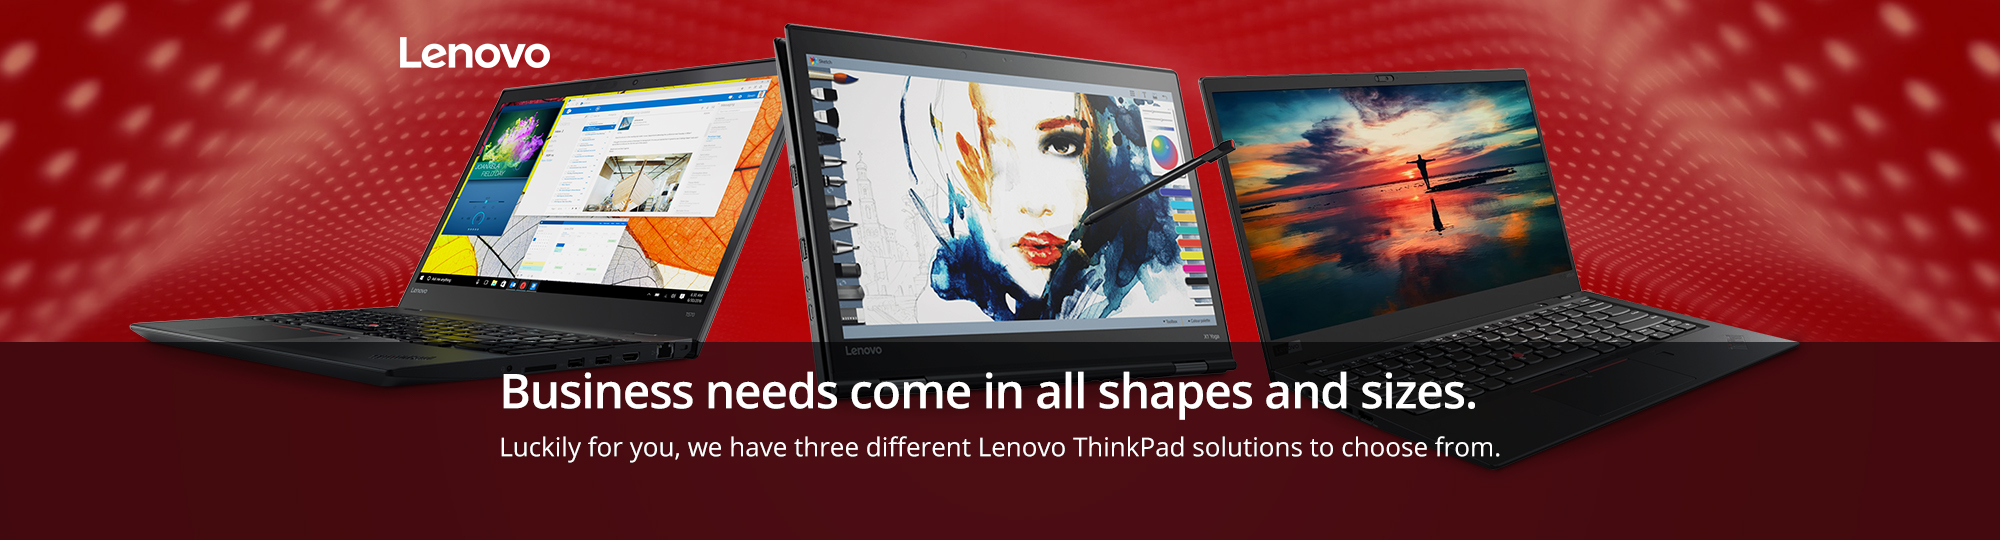 Business needs come in all shapes and sizes. Luckily for you, we have three different Lenovo ThinkPad solutions to choose from.